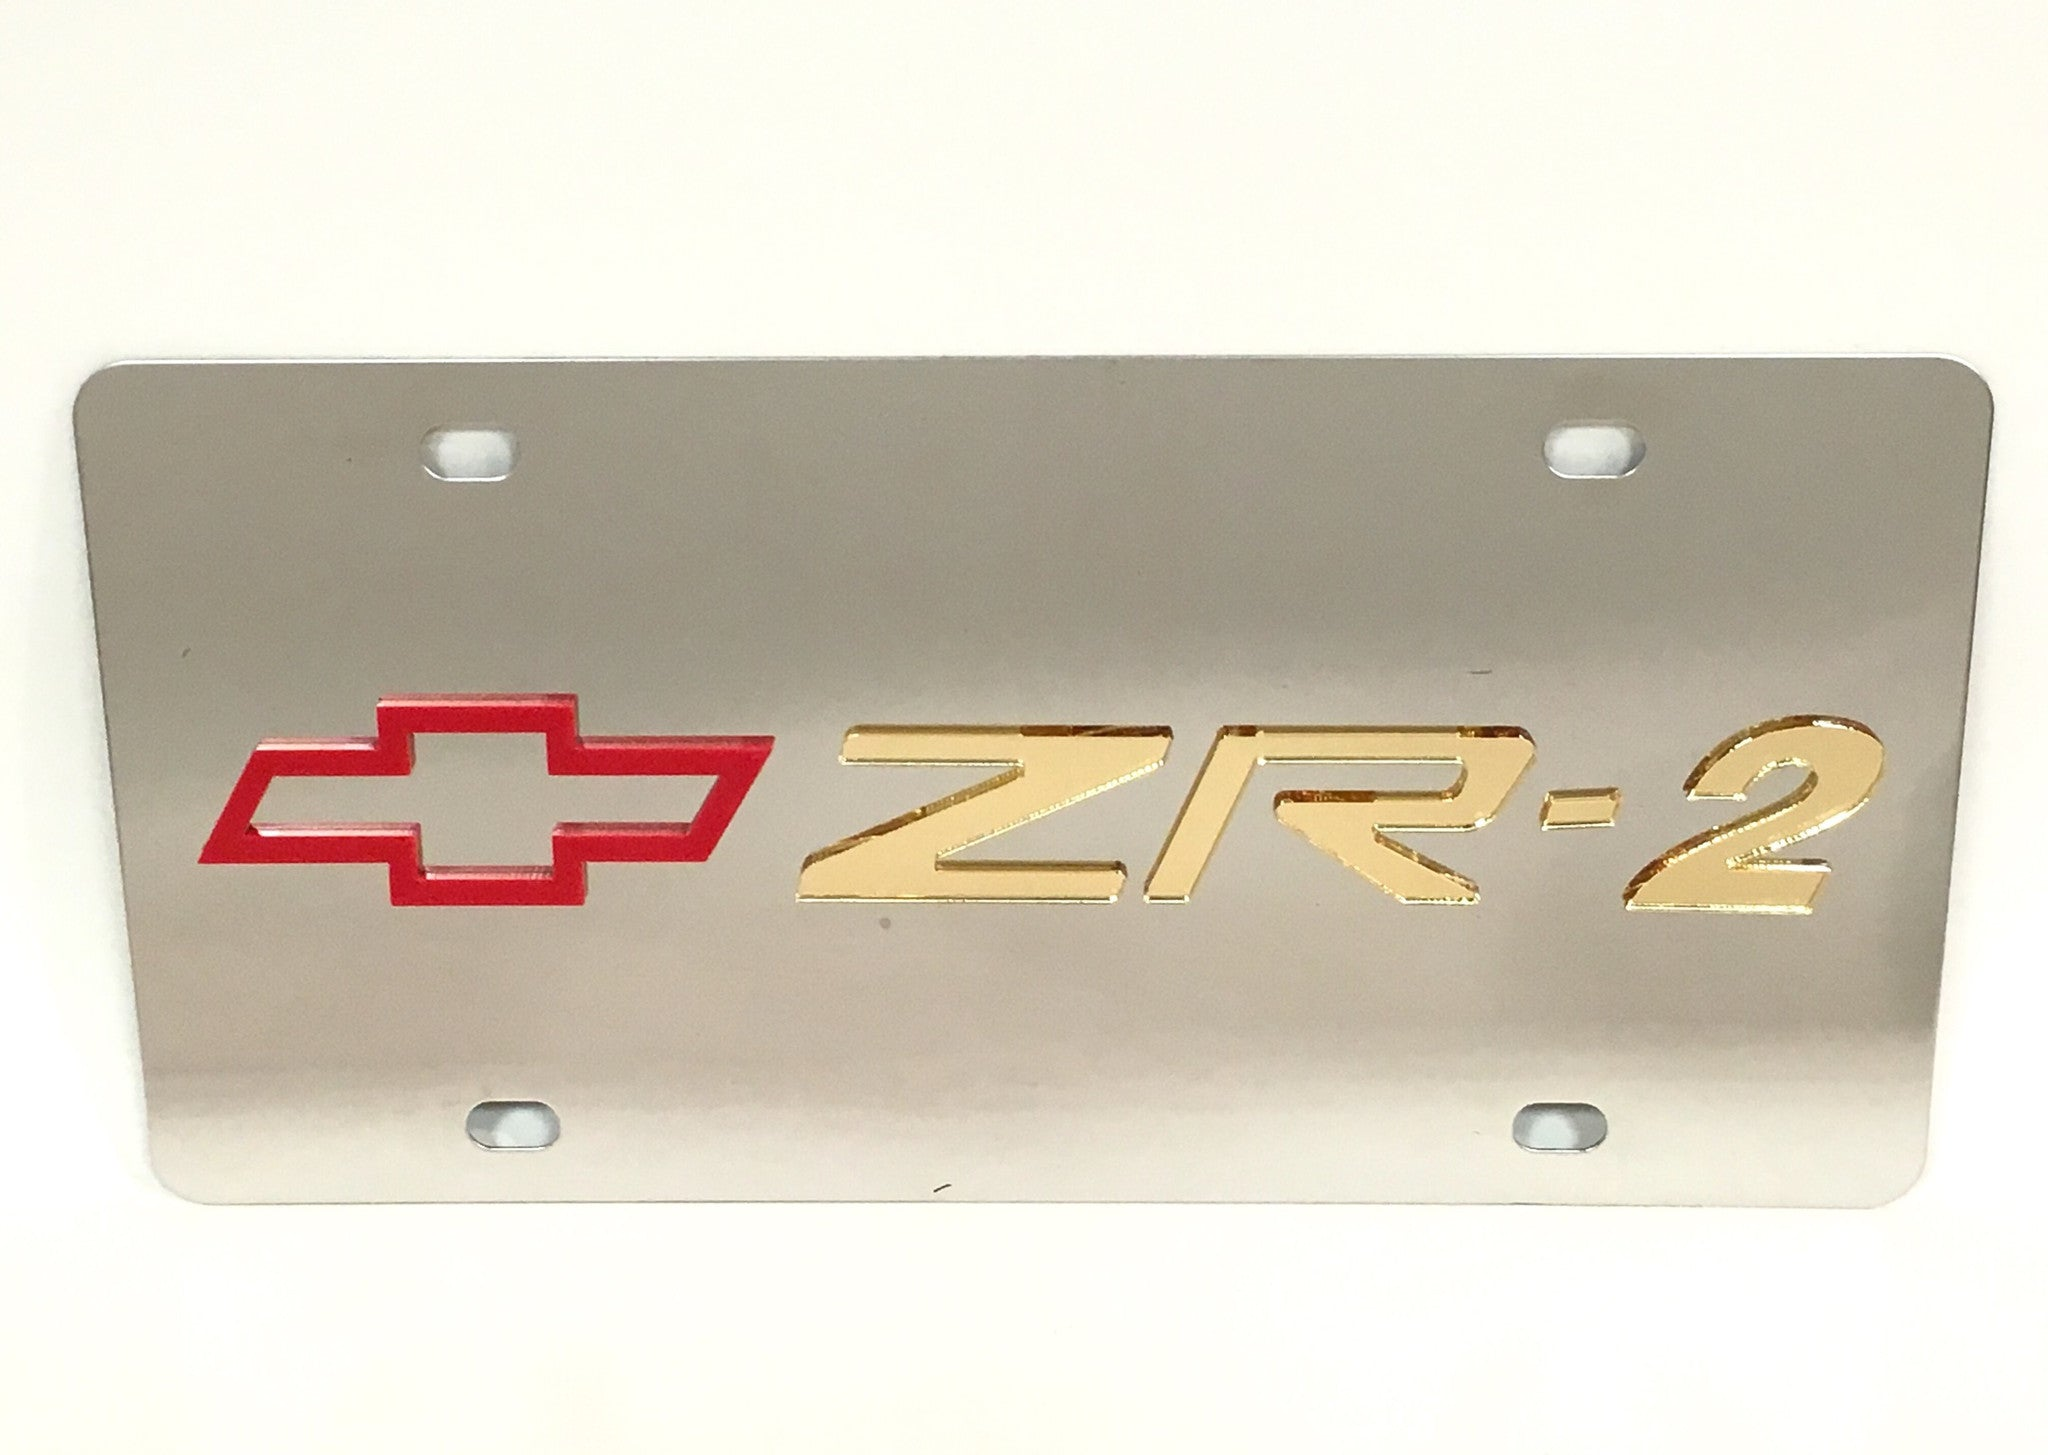 Chevy ZR-2 Stainless Steel License Plate